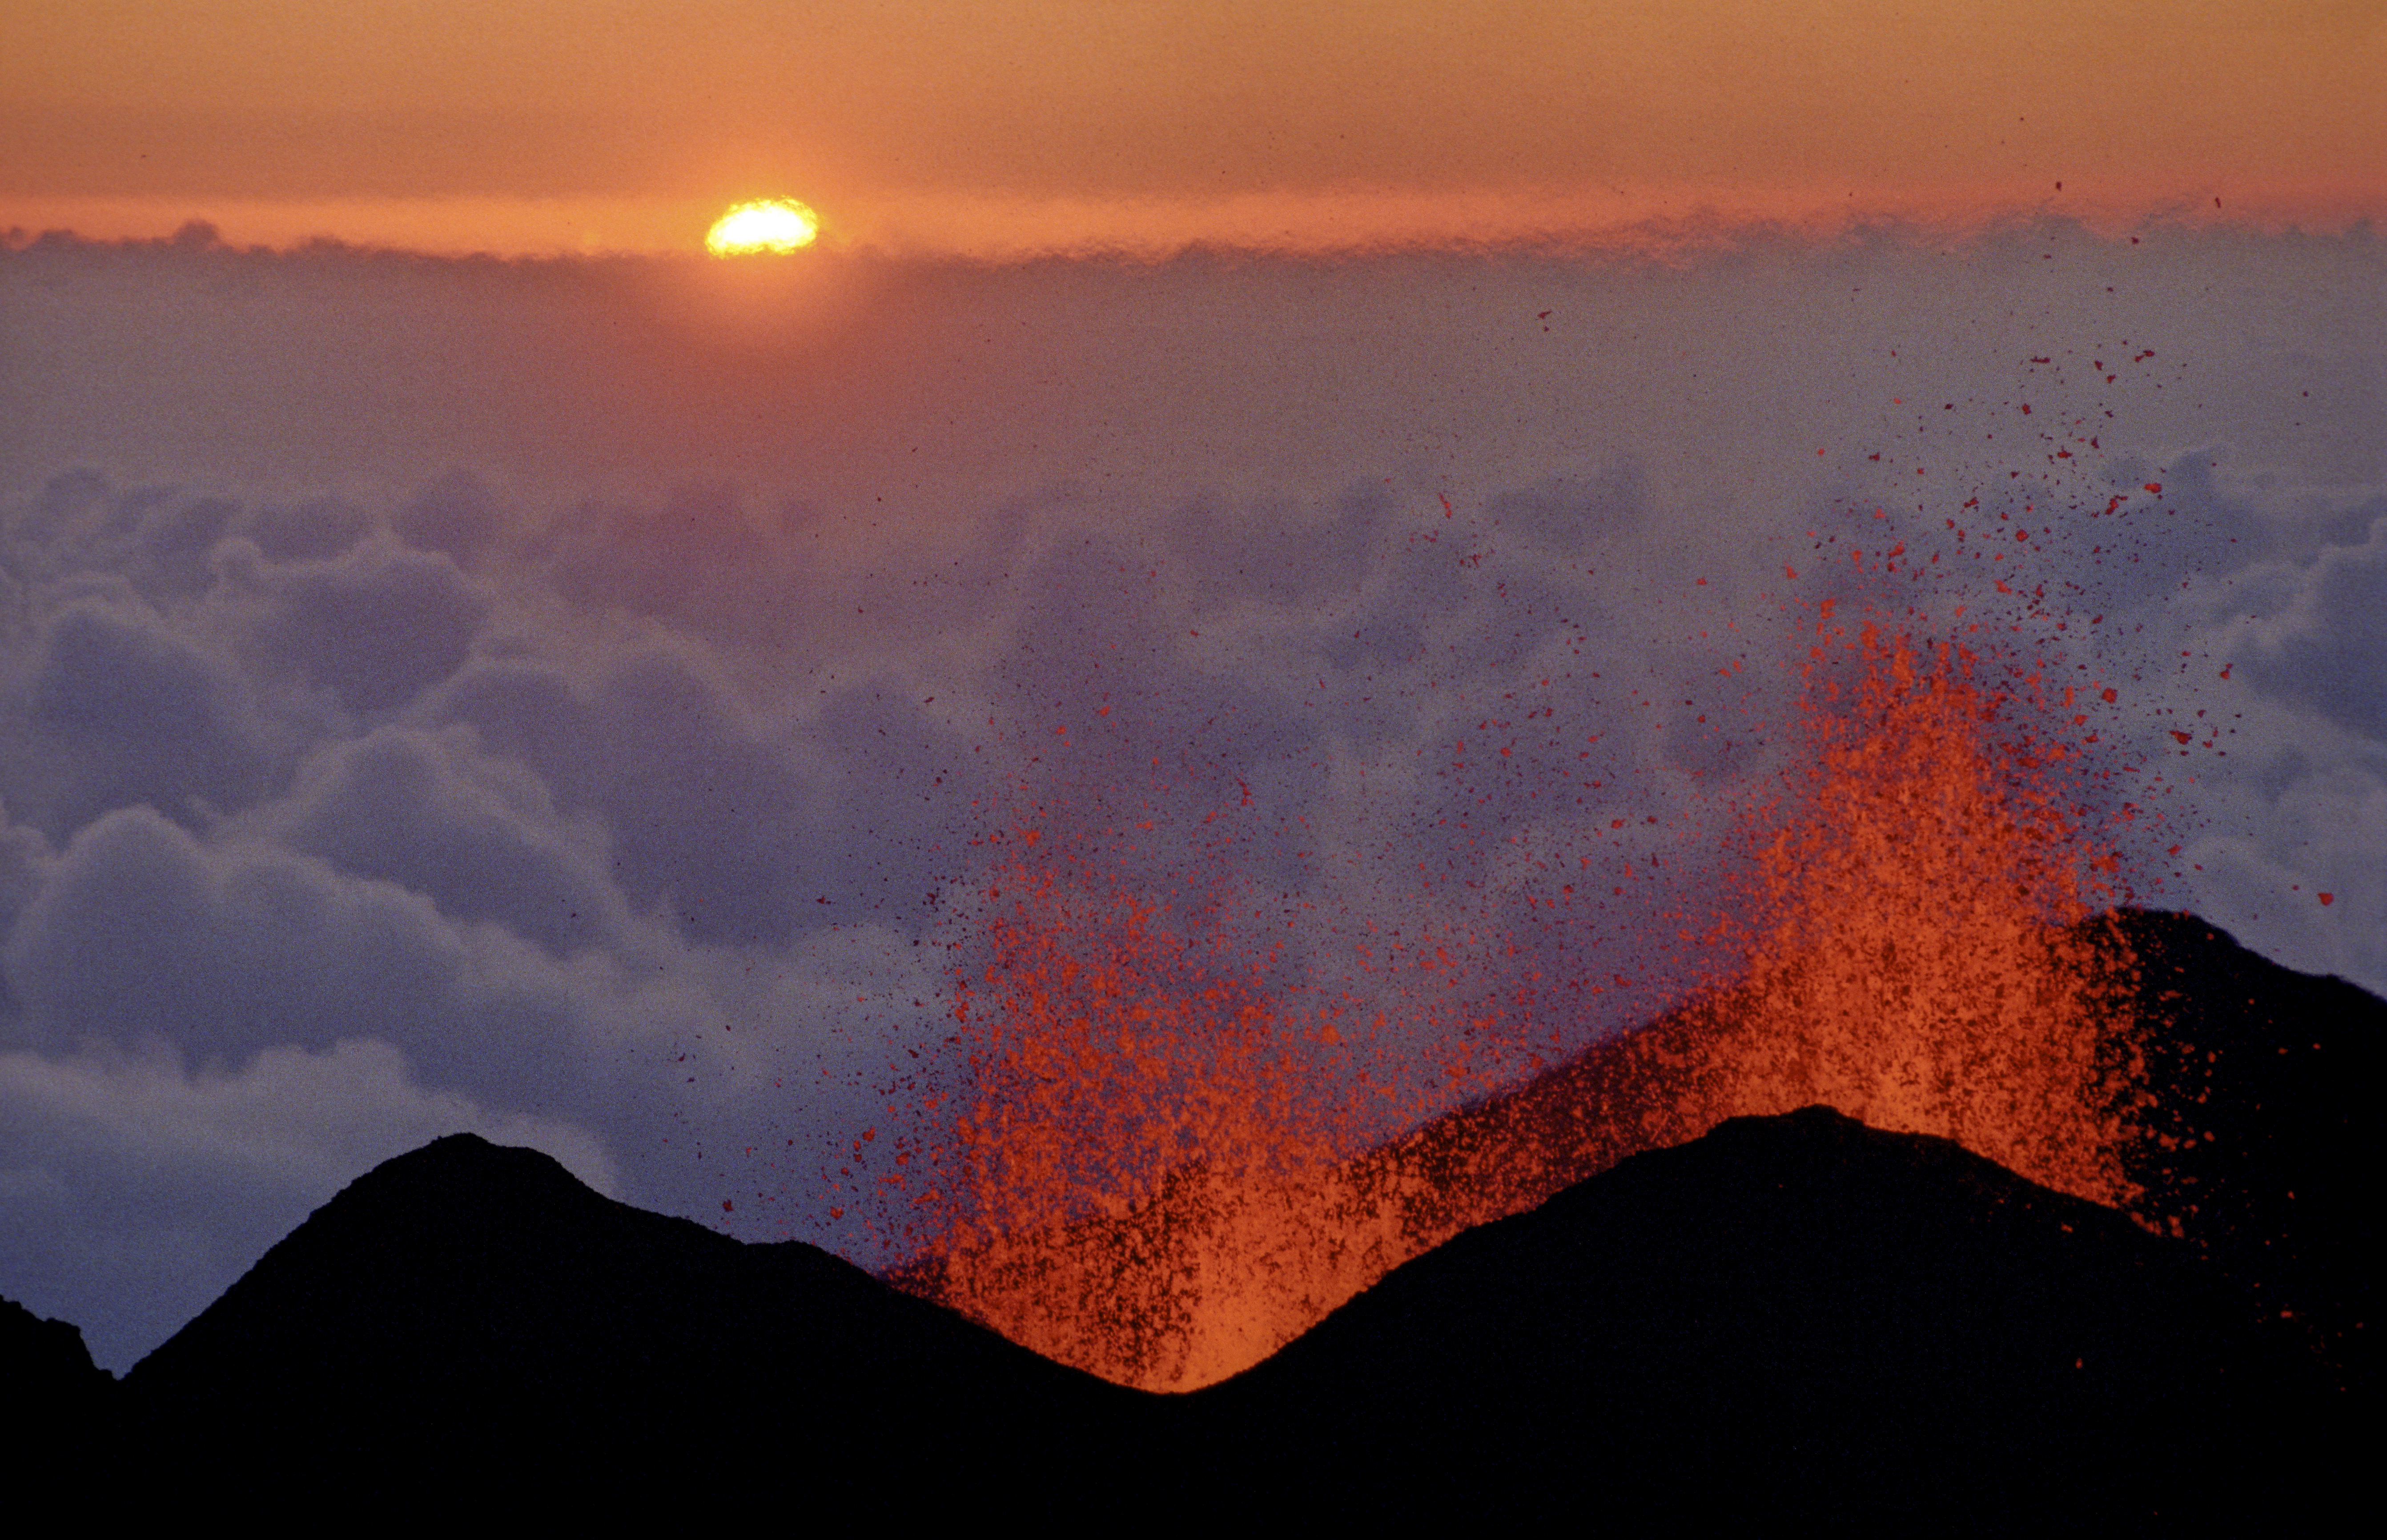 Volcanoes are a major attraction in Reunion